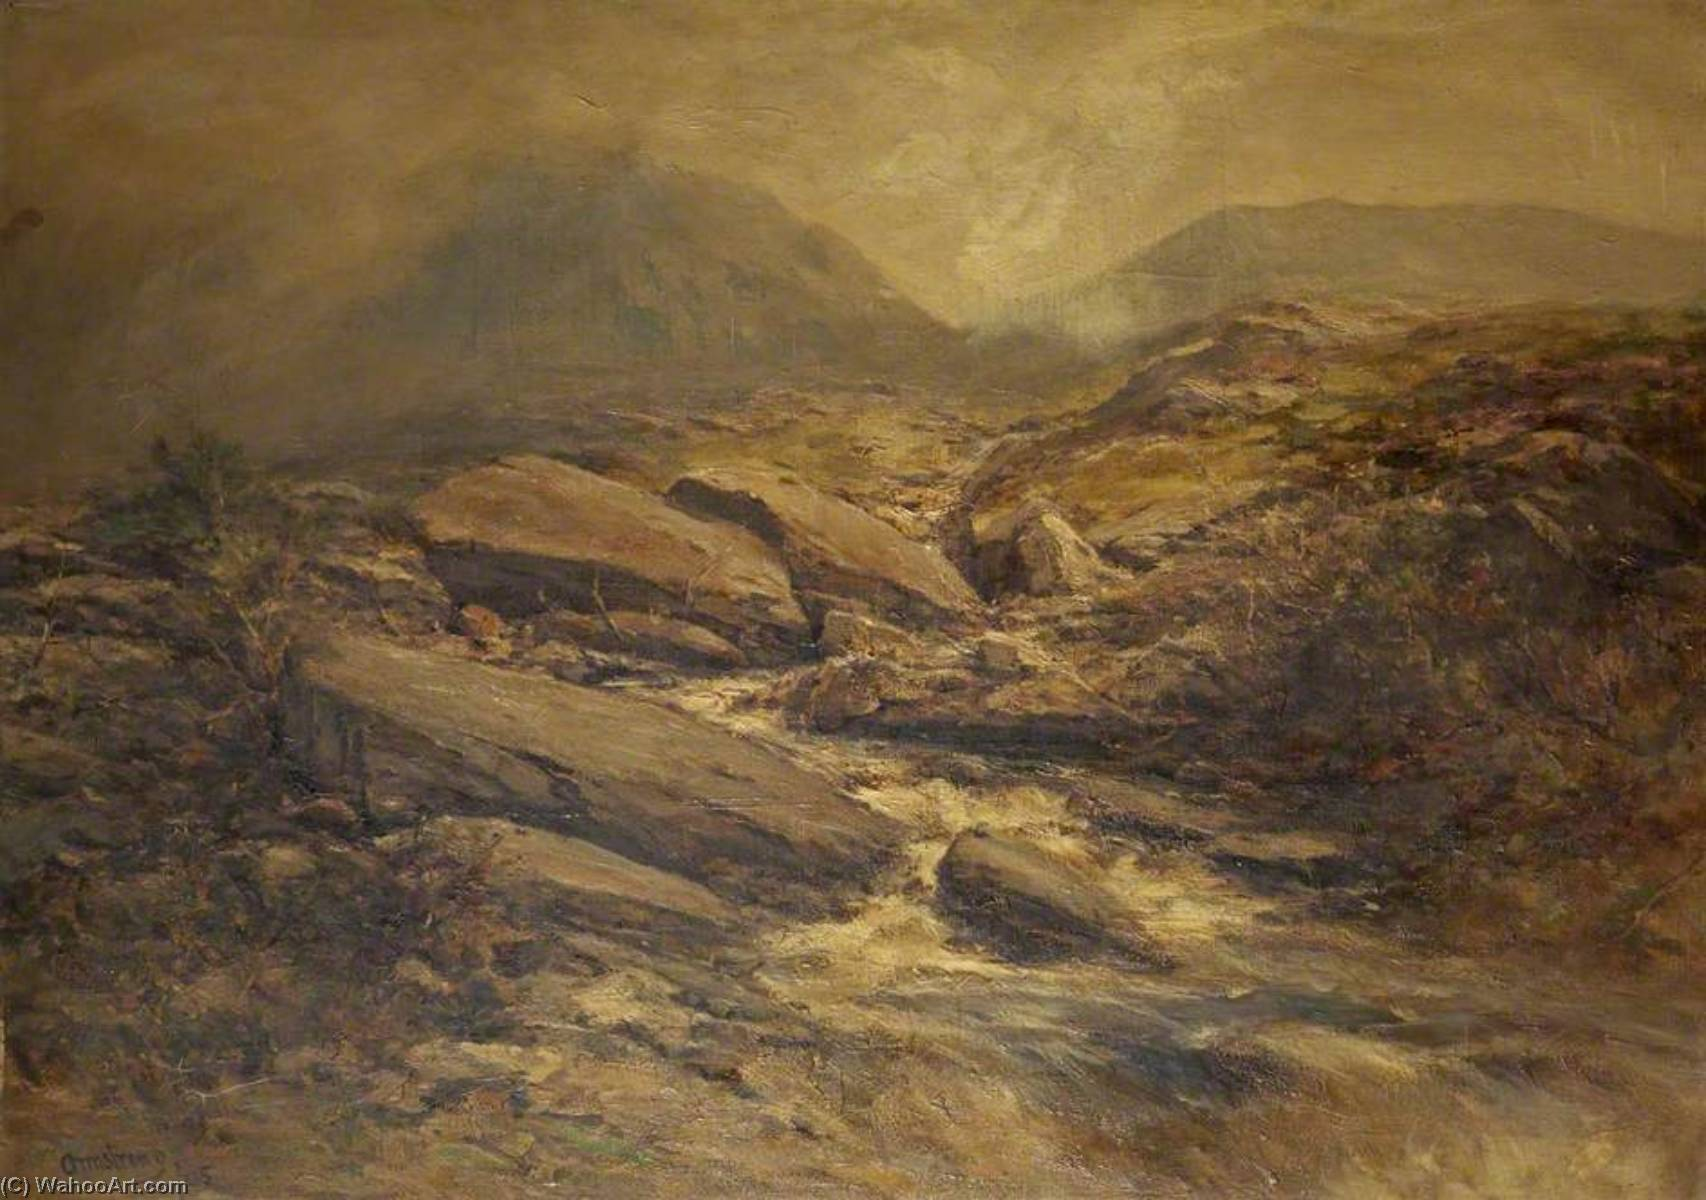 Wikioo.org - The Encyclopedia of Fine Arts - Painting, Artwork by Francis Abel William Taylor Armstrong - A River Scene with Rocks in the Foreground and Hills Beyond